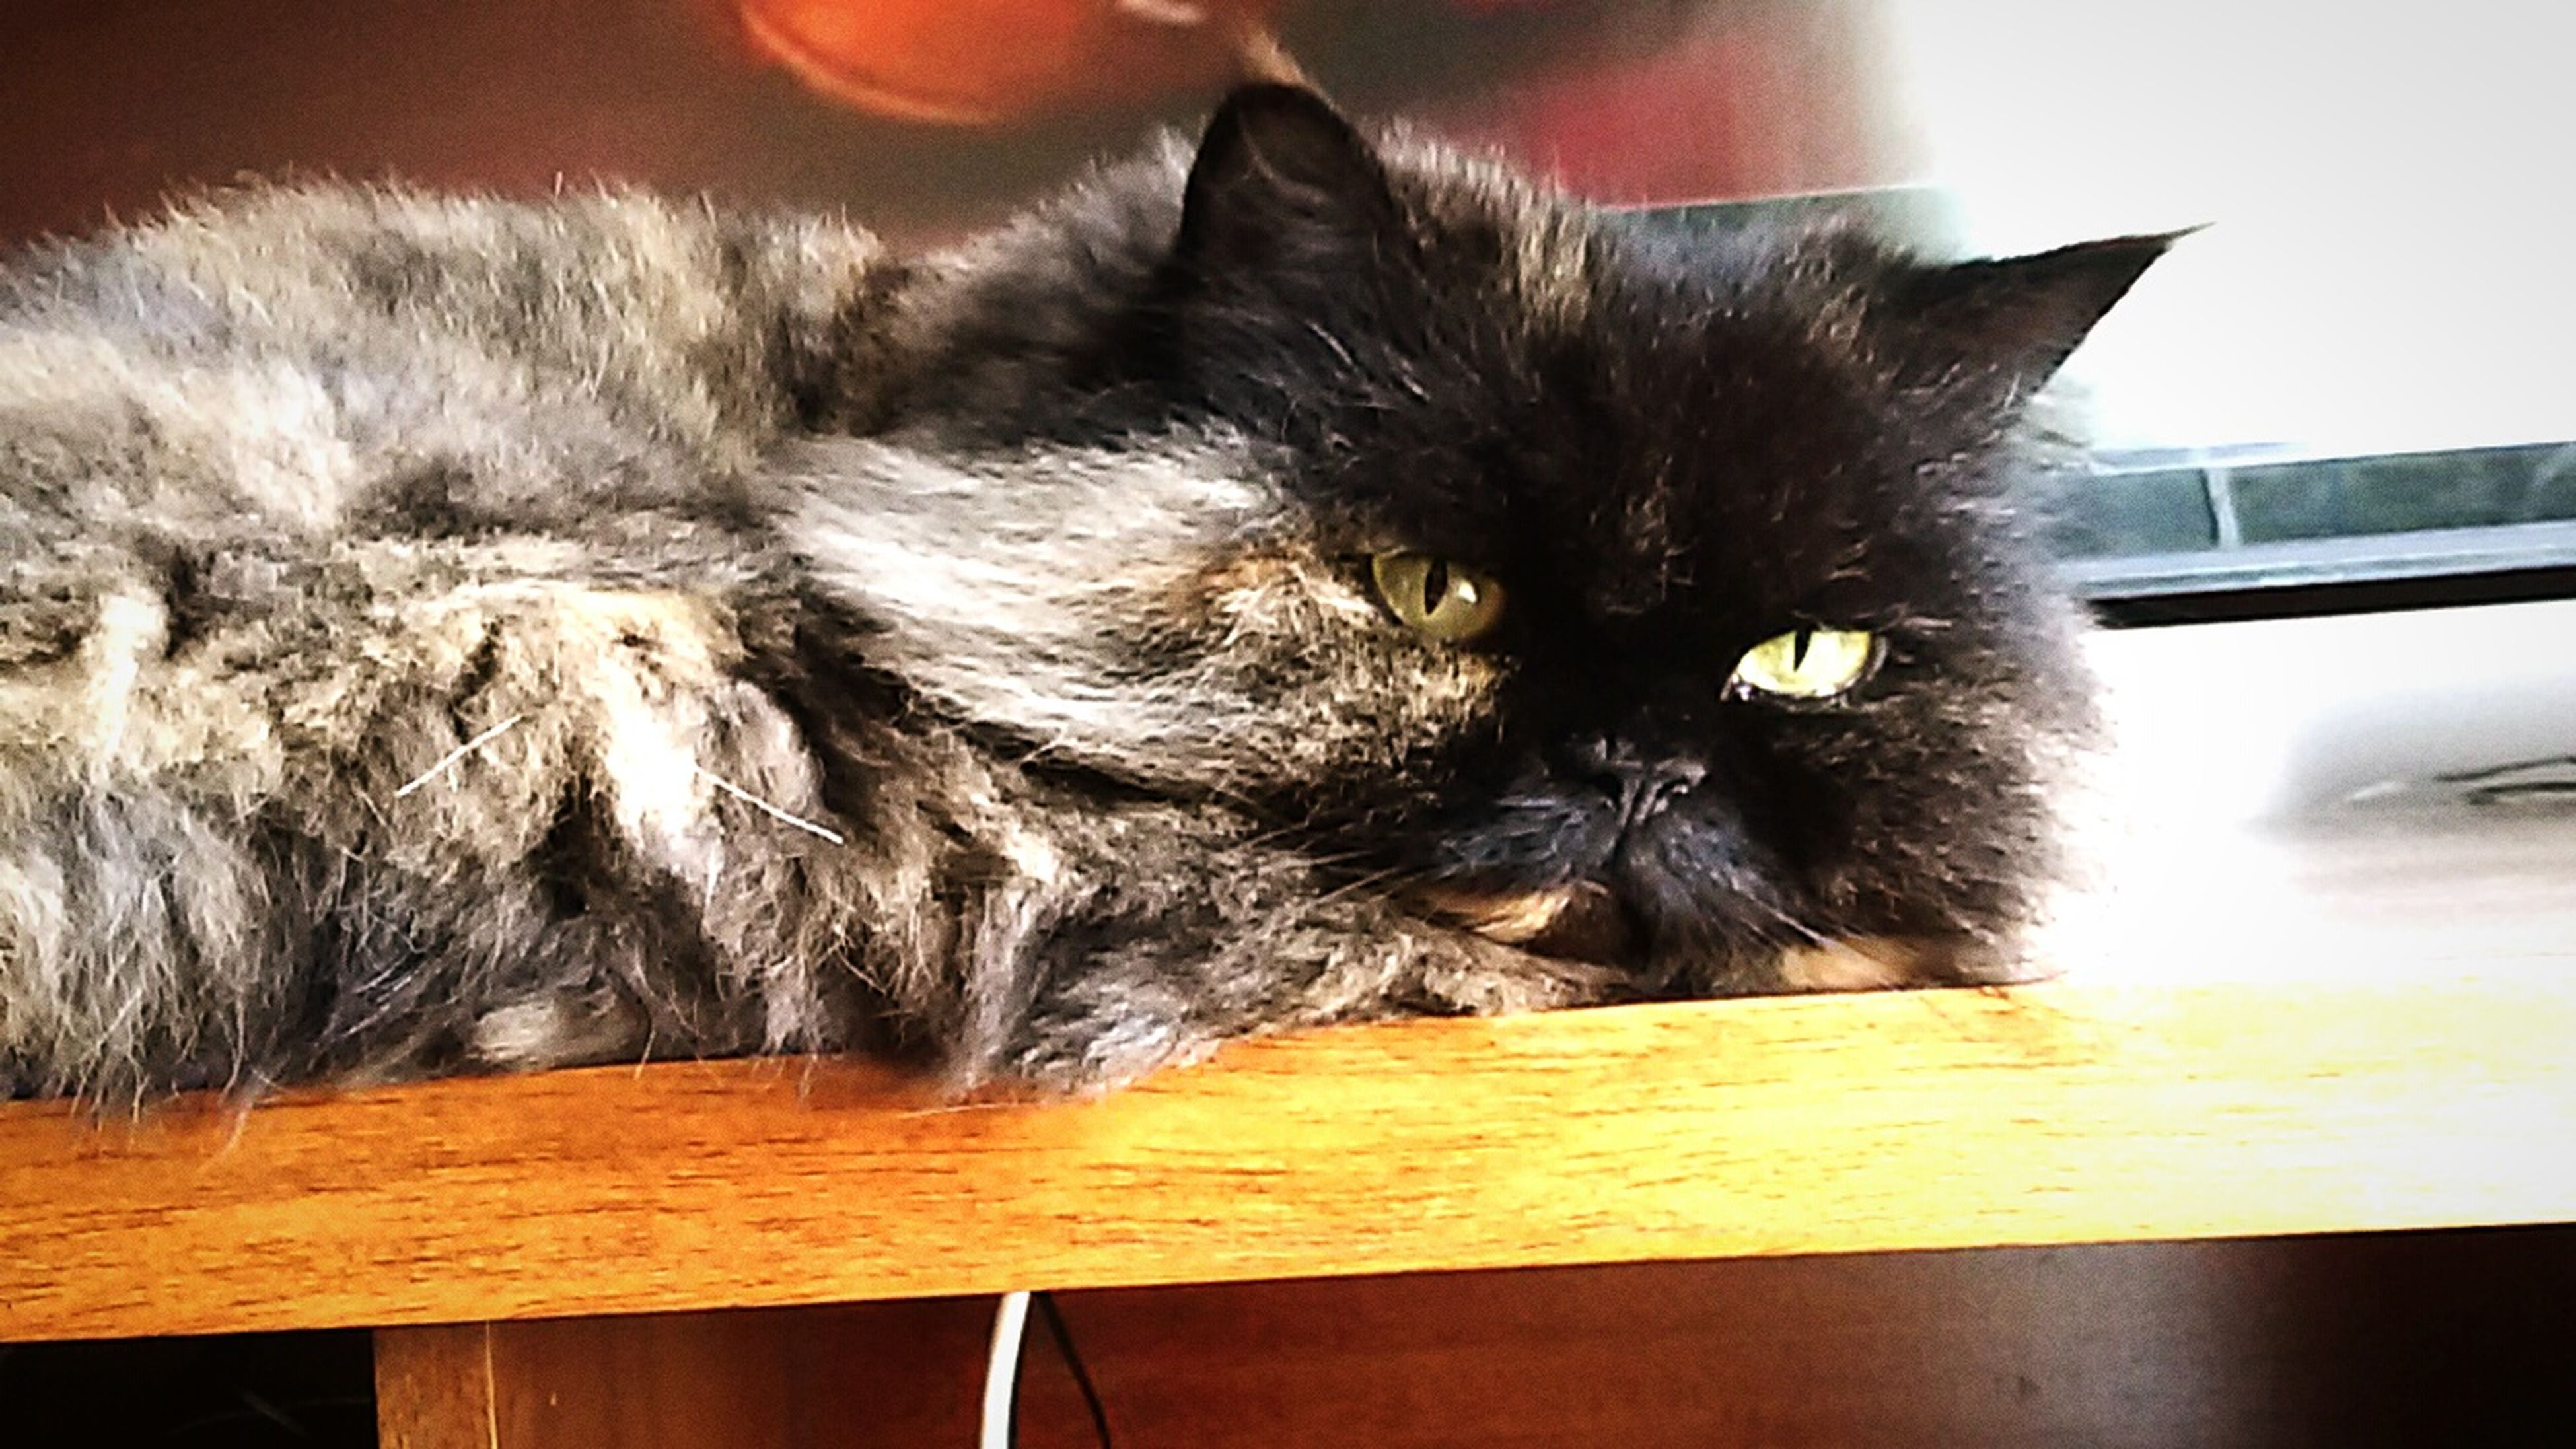 indoors, domestic cat, pets, domestic animals, cat, one animal, animal themes, feline, mammal, home interior, whisker, table, close-up, relaxation, home, animal head, no people, wood - material, looking away, resting